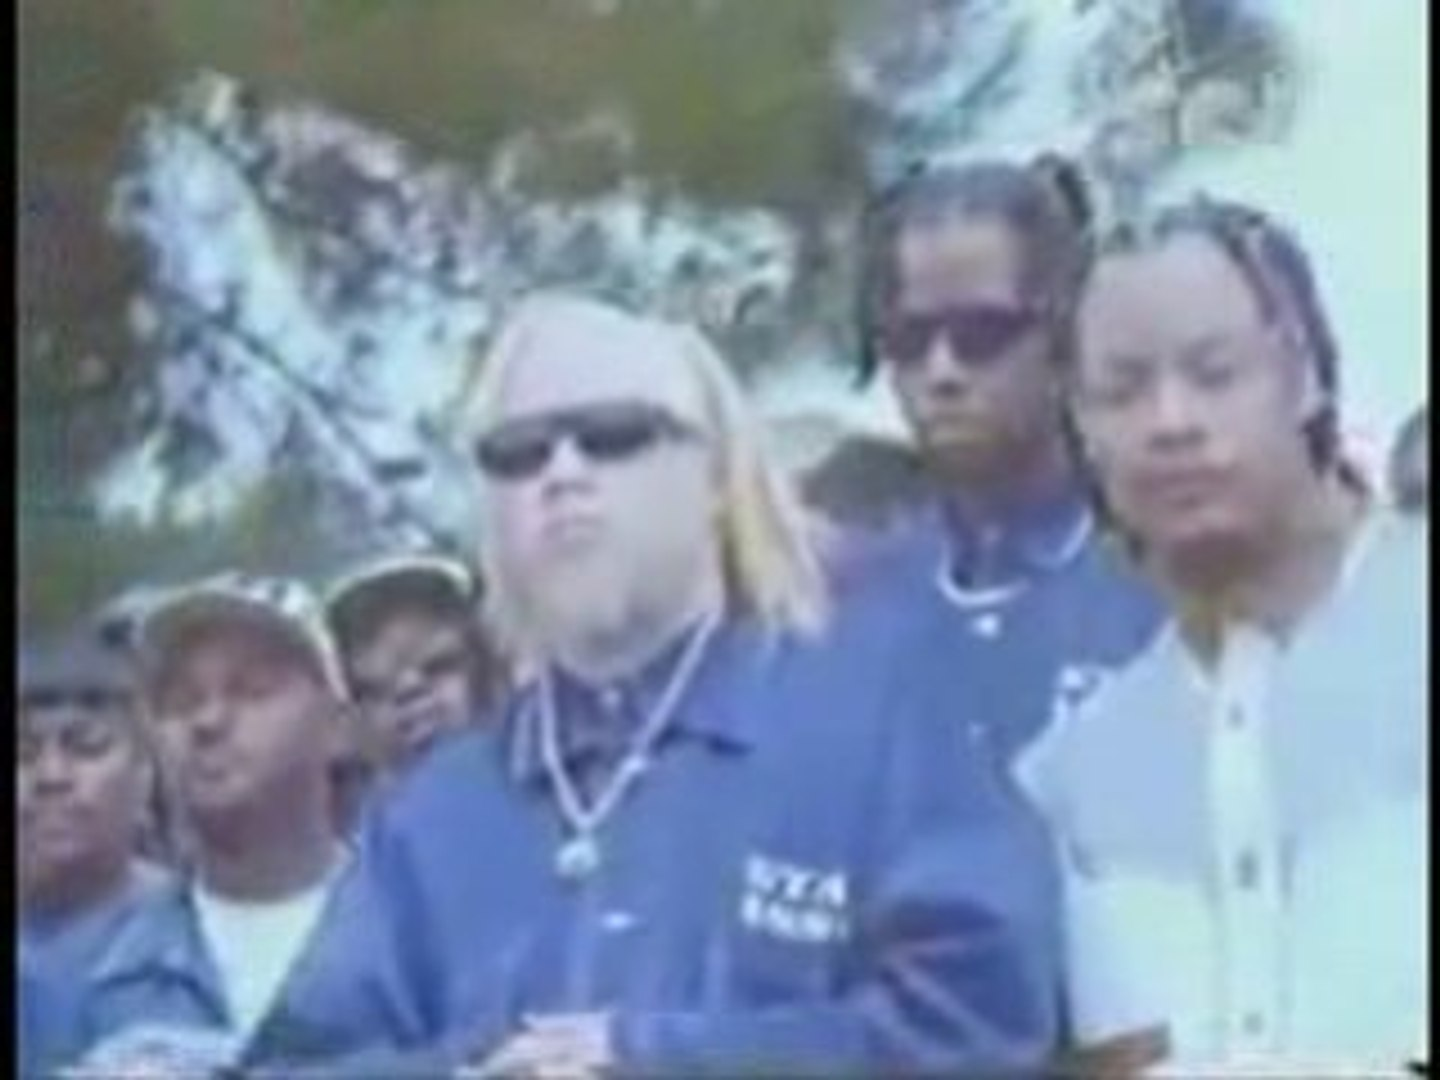 Niggaz Off The Street(N.O.T.S)-Another Front And Back[Crips]